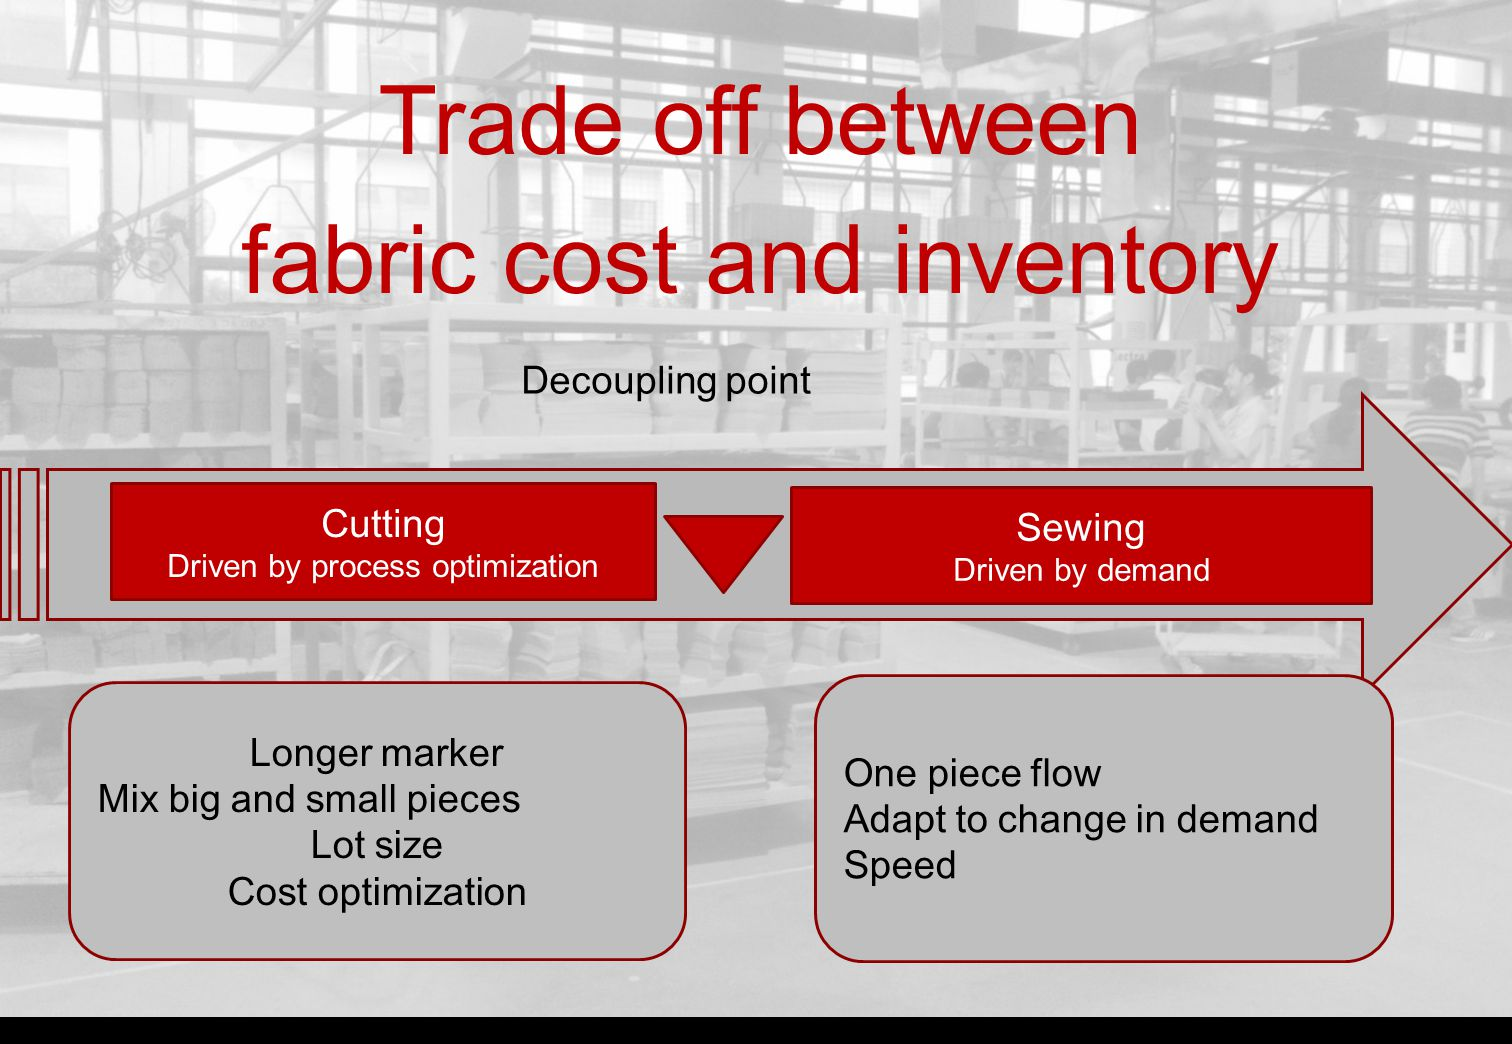 FLOW and LAYOUT DESIGN FOR MANUFACTURING FABRIC/HIDE CONSUMPTION OPERATIONAL AVAILABILITY PERFORMANCE CUTTING QUALITY Our Expertise in Manufacturing Reduce lead time Reduce non value added activities Optimize space and motion Reduce material costs Improve efficiency Improve performance Reduce non quality costs Reduce industrialization costs and lead time D ESIGN /S TYLE P ROTOTYPES D EVELOPMENT P RODUCTION